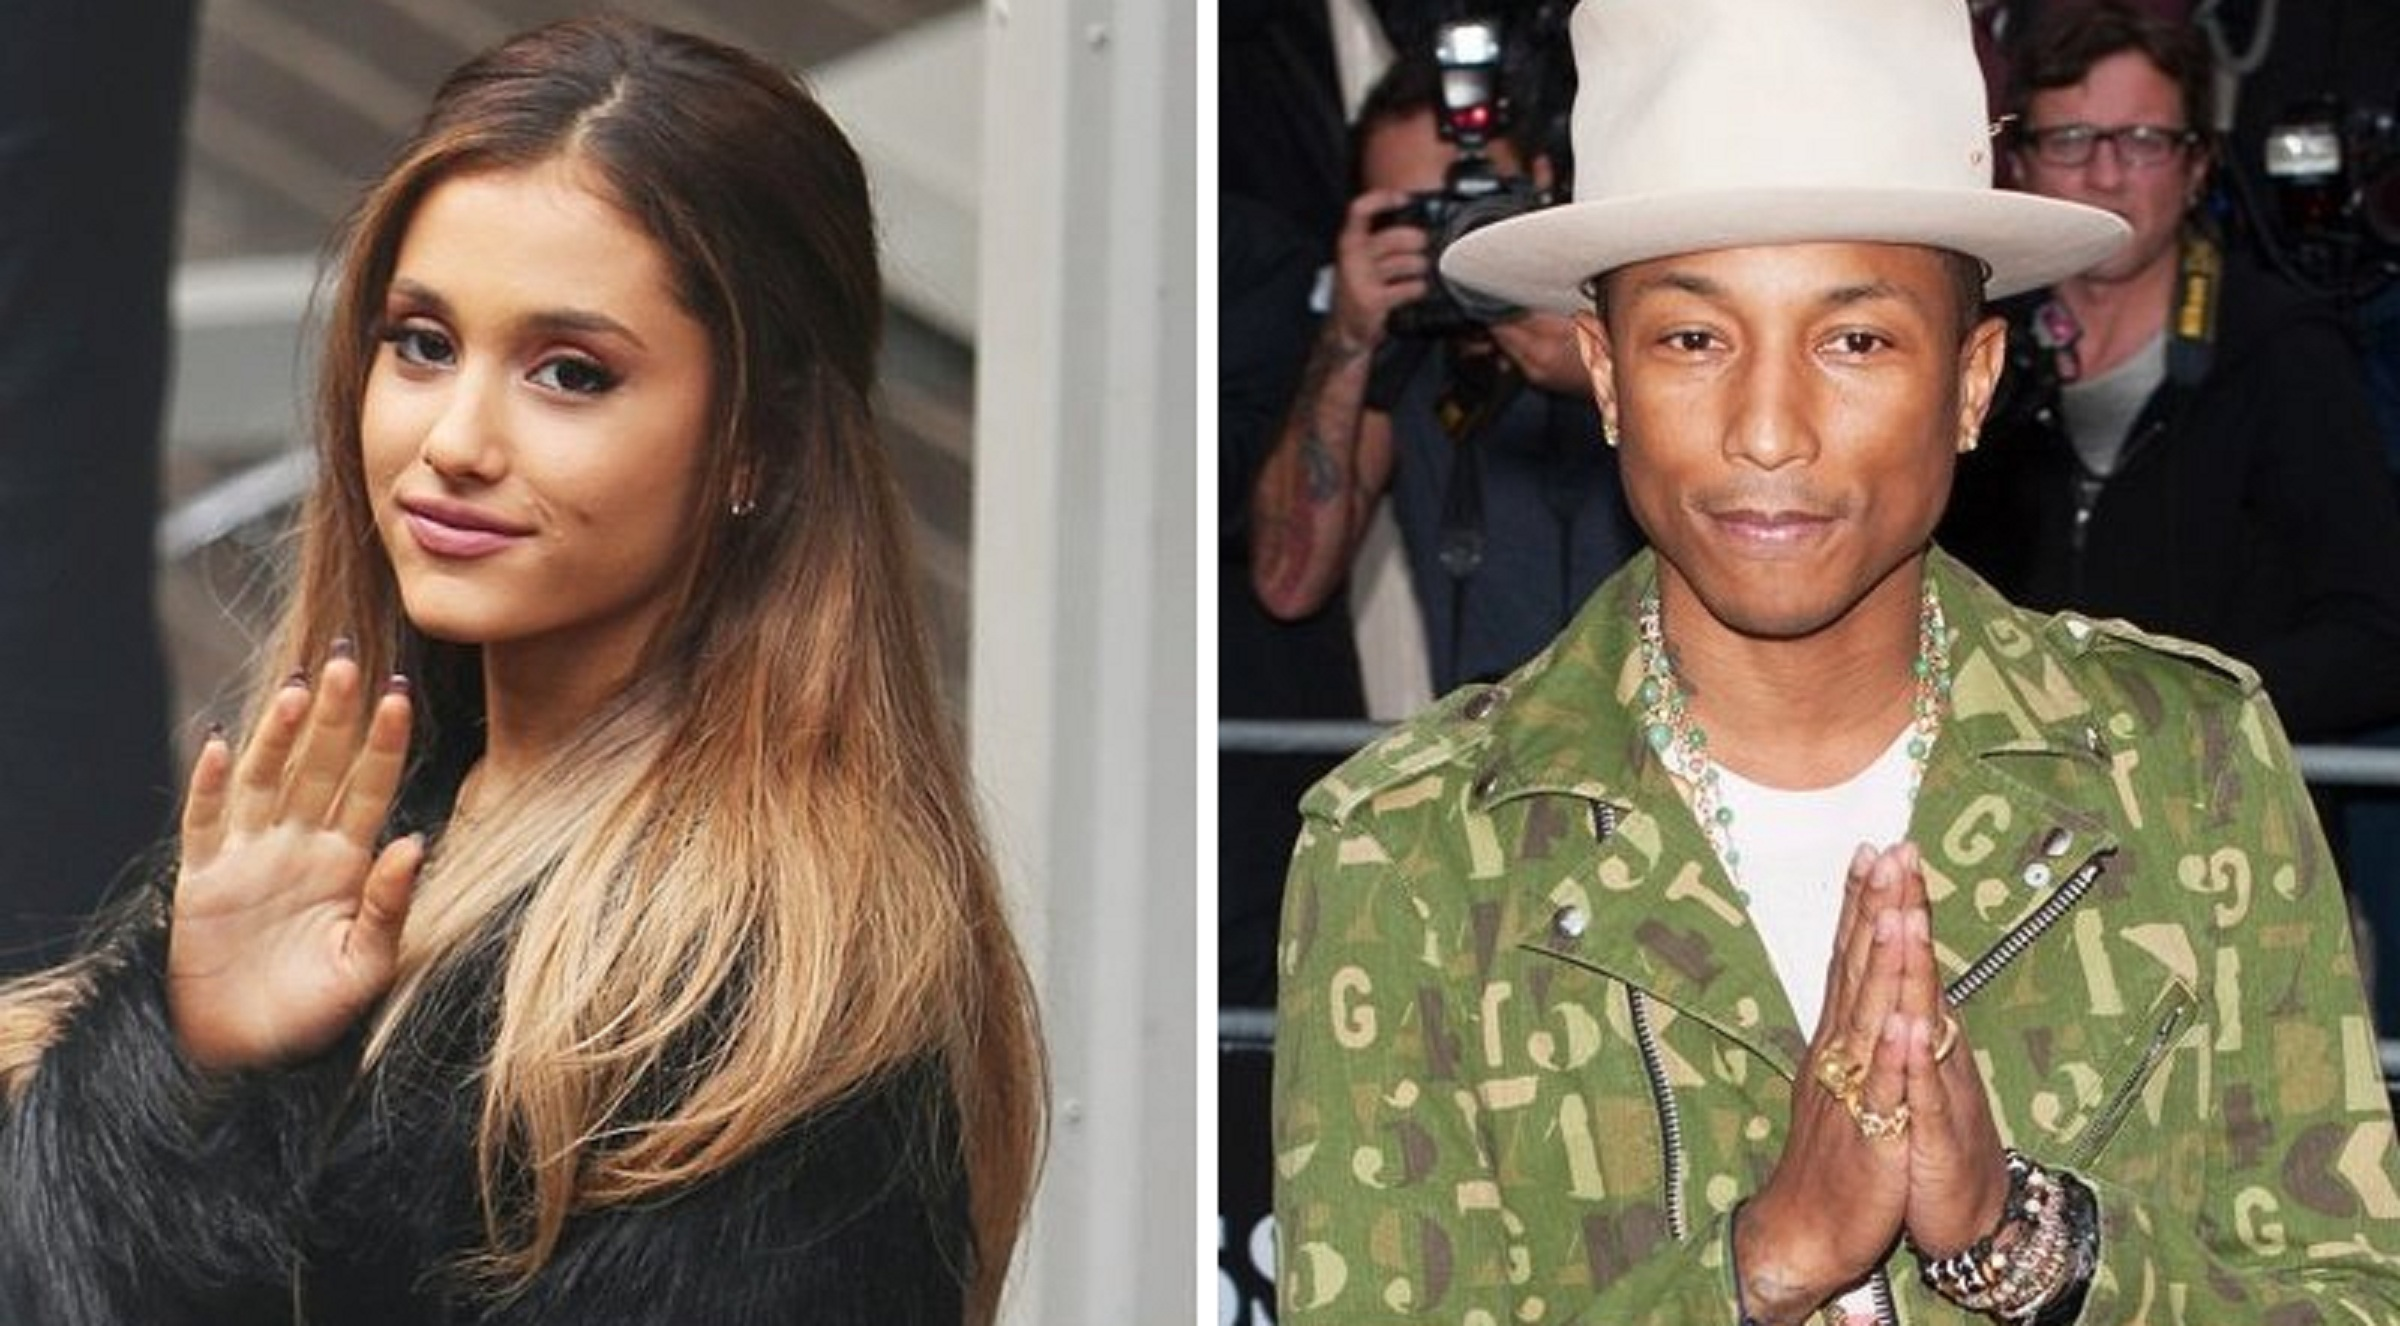 Here's Why Ariana Grande Fans Are Urging Her Not To Work With Pharrell Williams